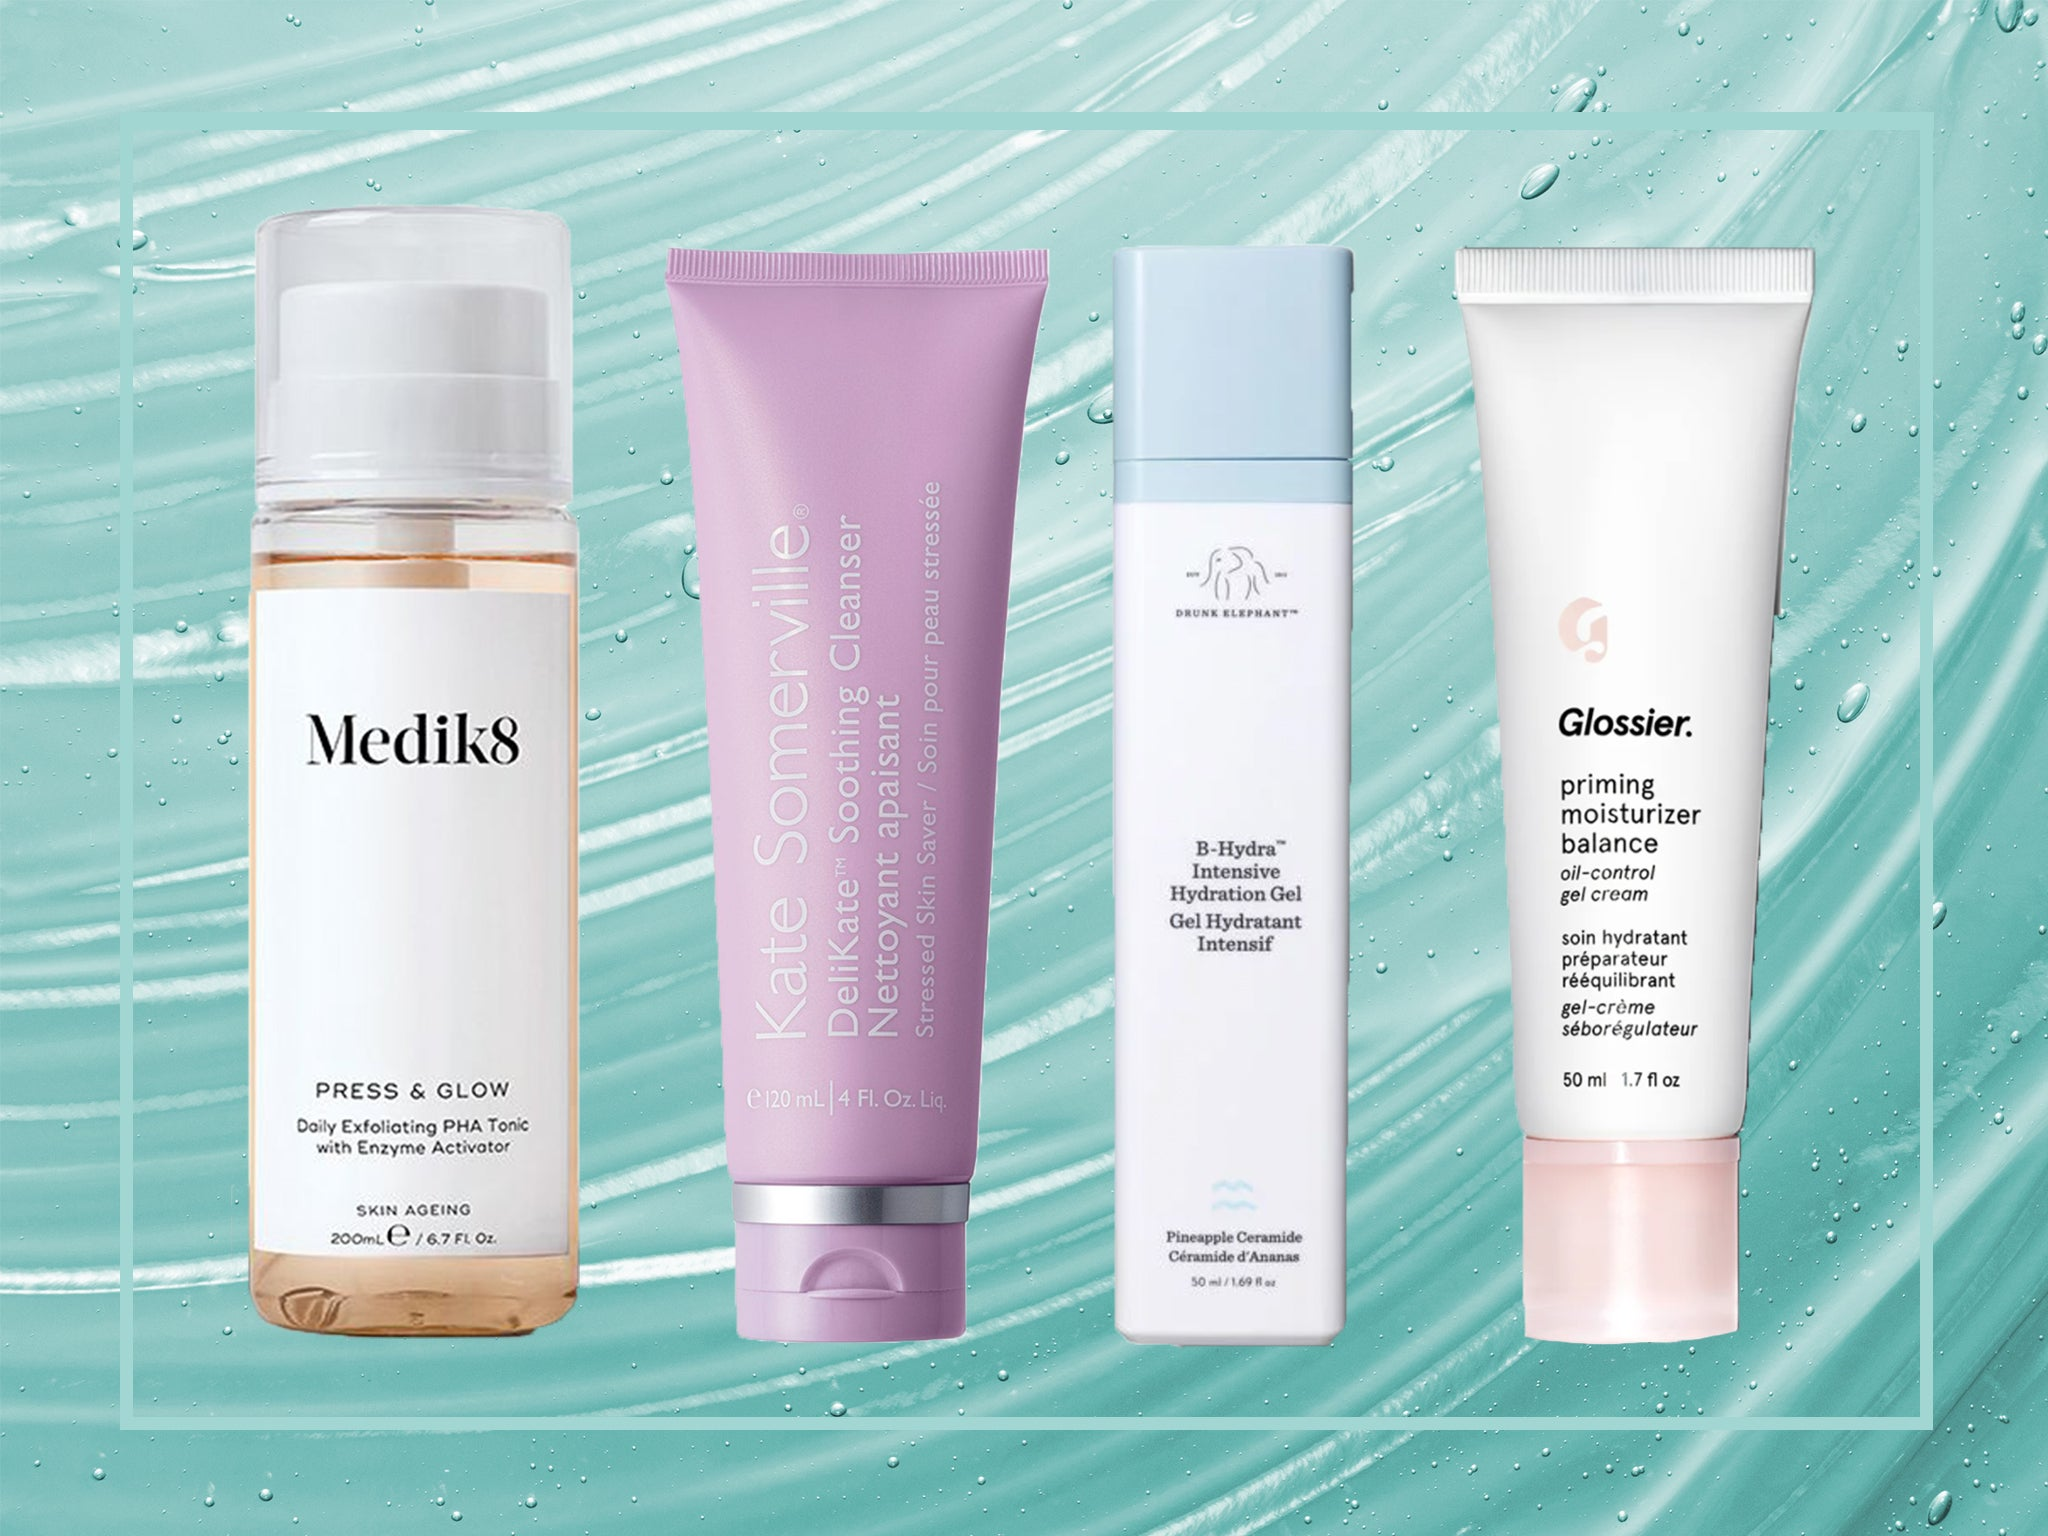 Winter skincare: Everything you need to tackle dry skin, according